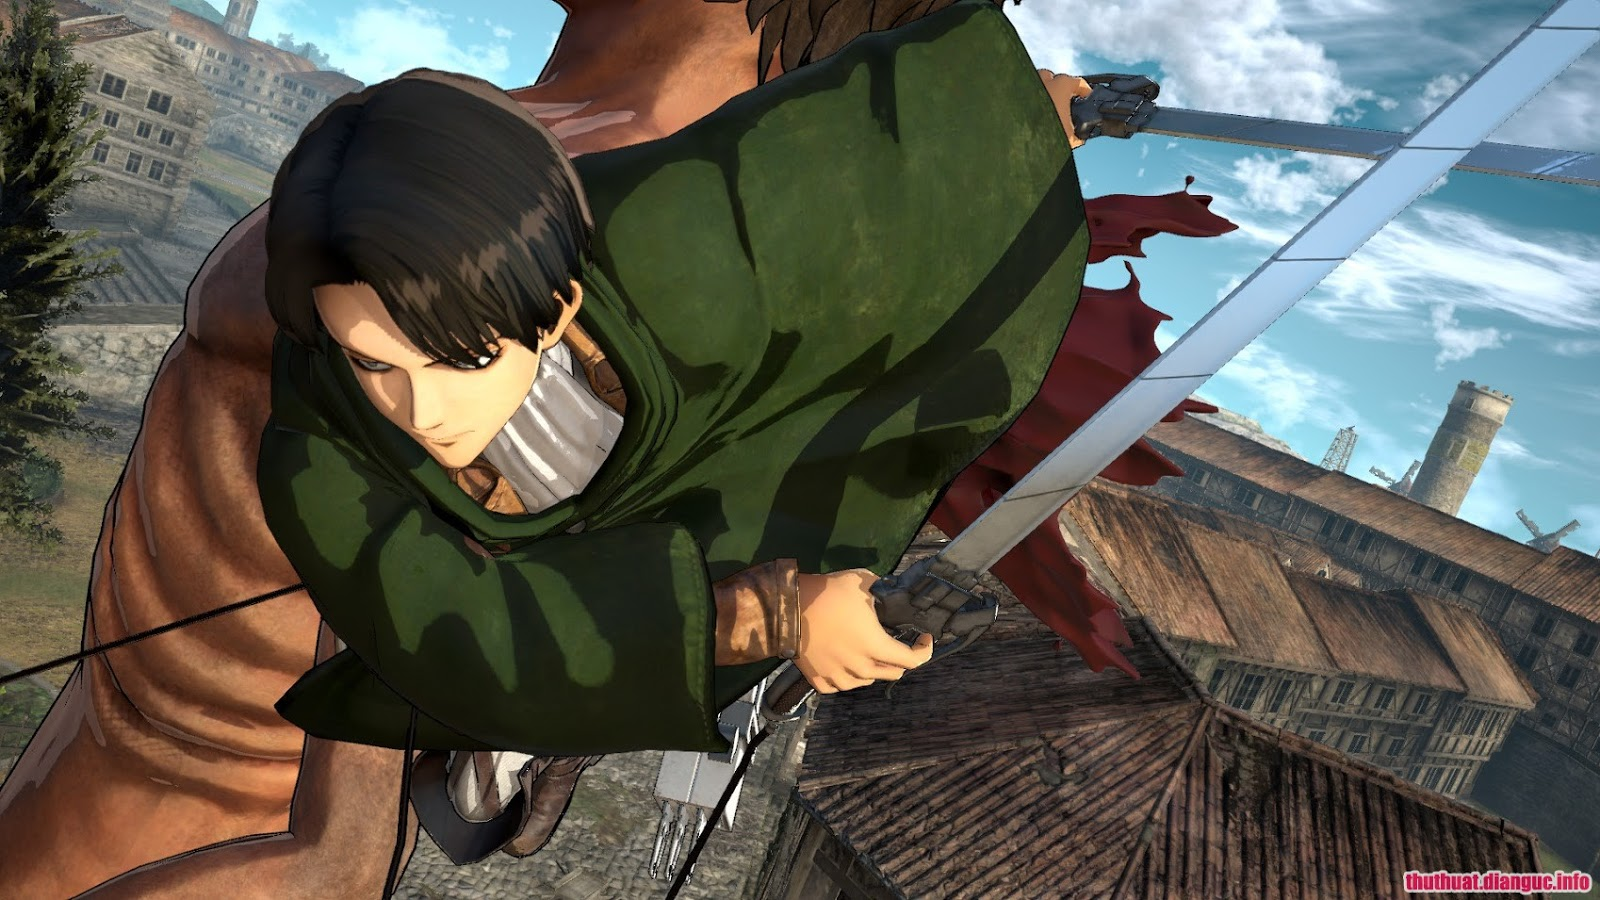 Tải Game Attack on Titan Wings of Freedom Full Crack , Tải game Attack on Titan Wings of Freedom miễn phí, Attack on Titan Wings of Freedom, Attack on Titan Wings of Freedom free download,